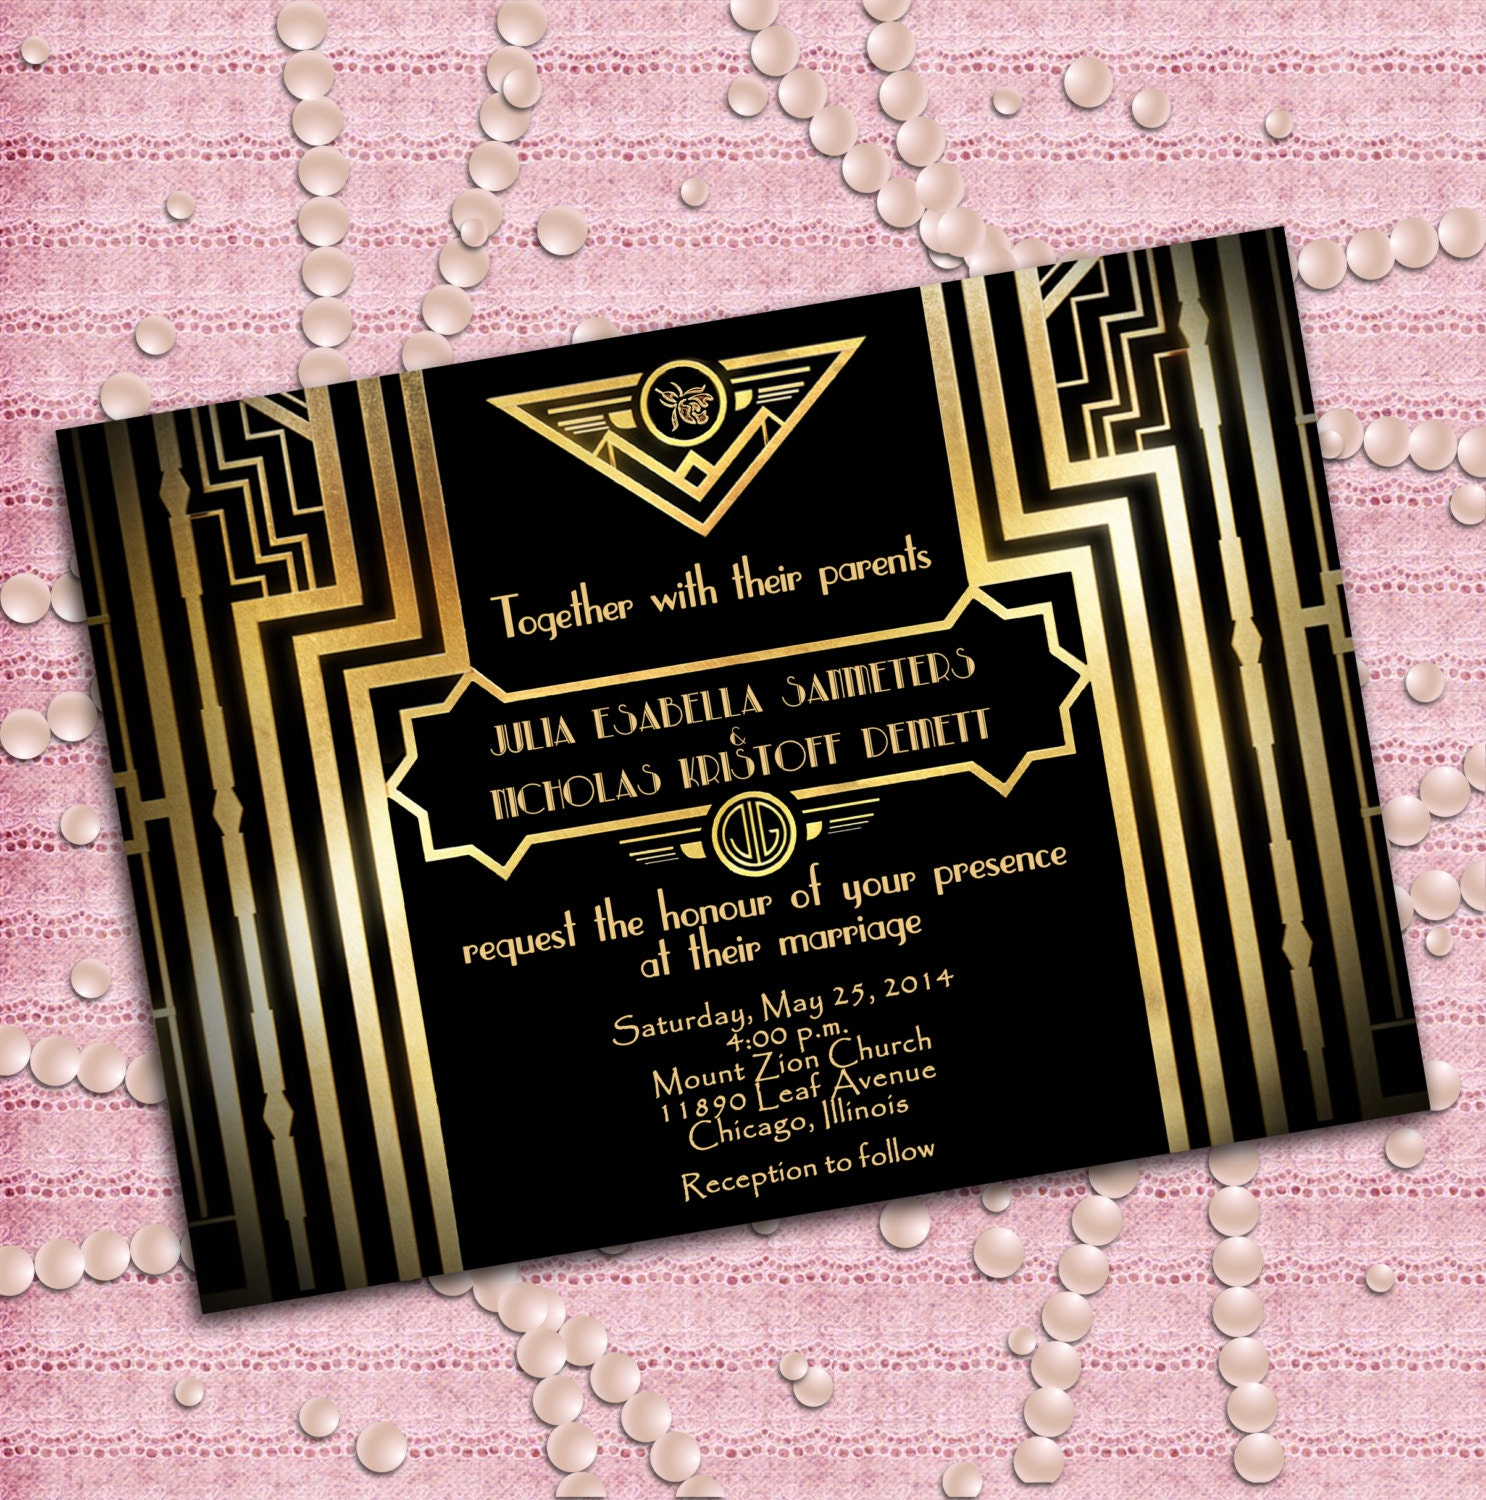 Great Gatsby Style Art Deco Wedding Invitation 1920 39 S